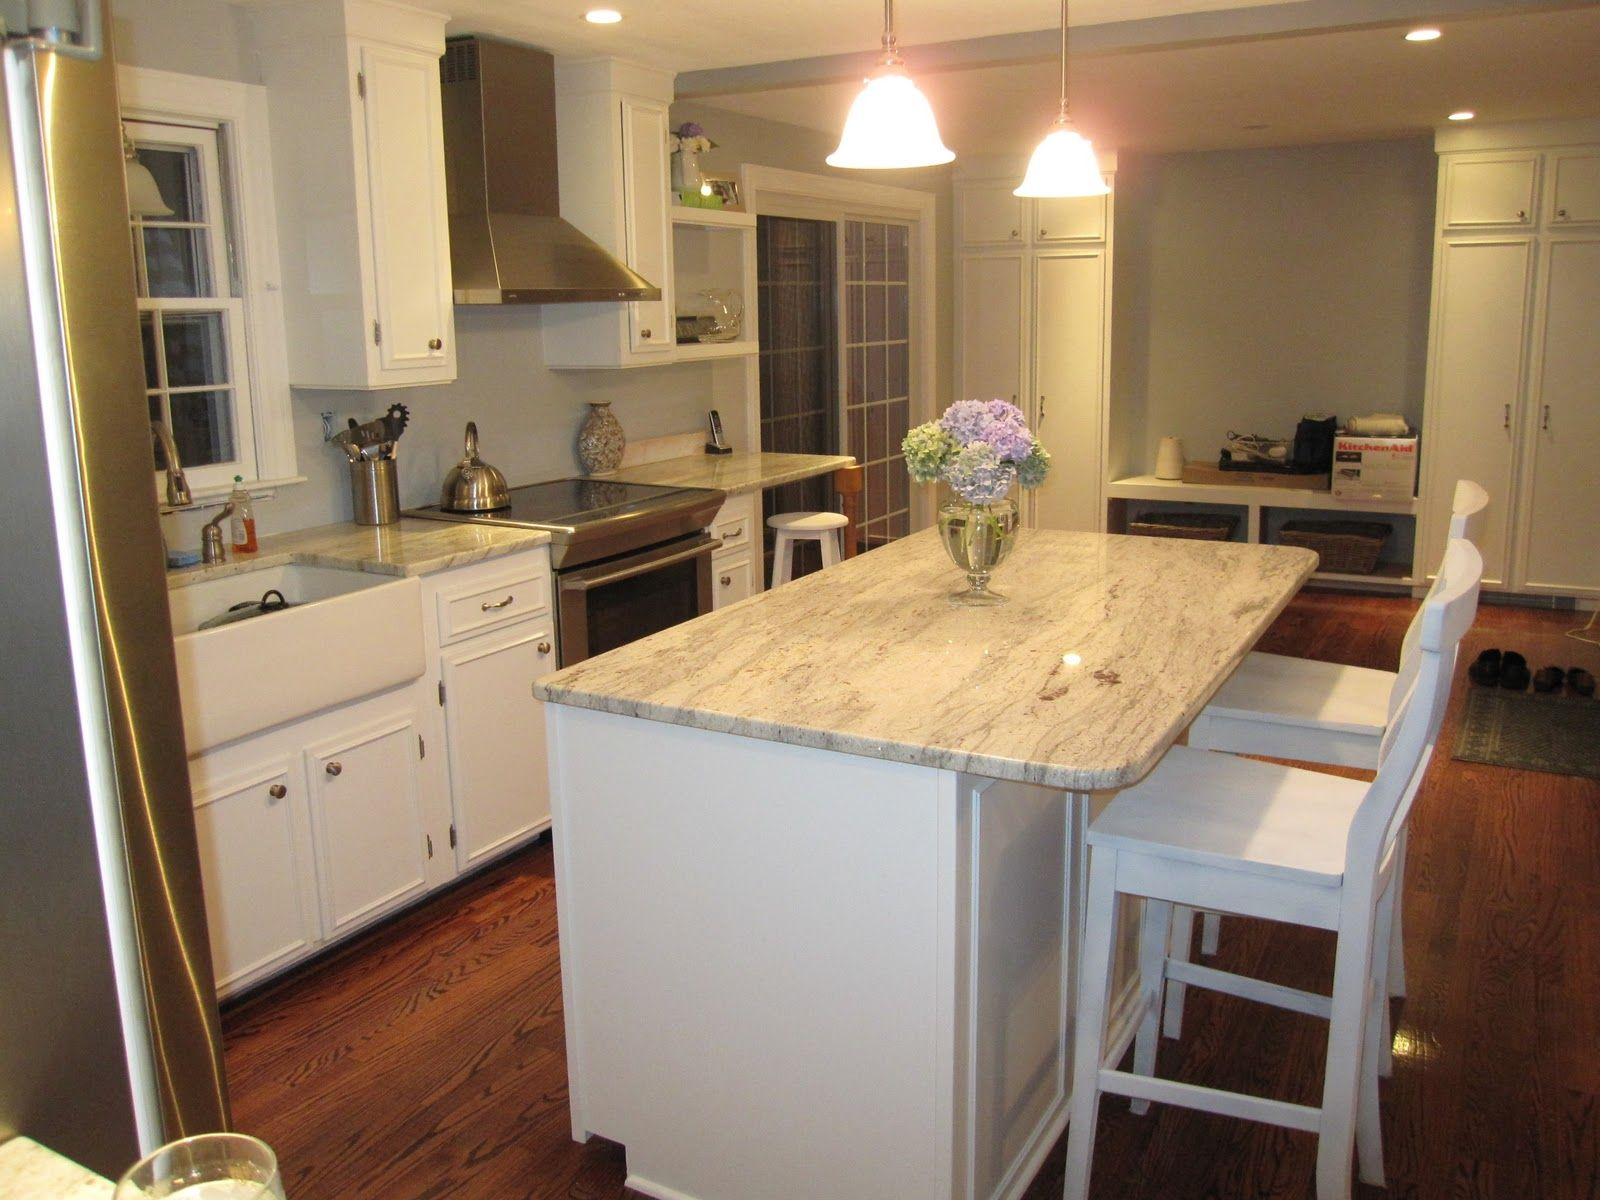 Granite Kitchen Countertops With White Cabinets White Cabinets With Granite Countertops Diy Kitchen White Ish